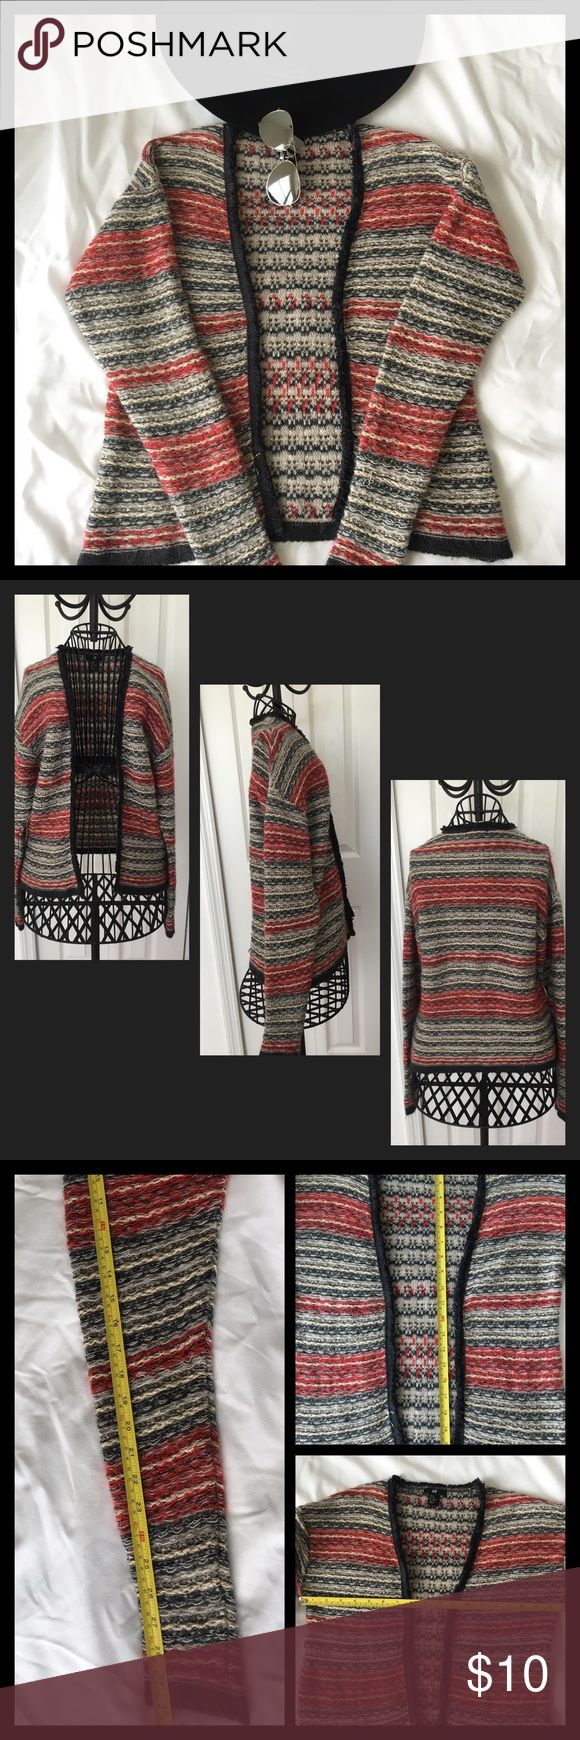 ✔️H&M multi color cardigan Beautiful H&M cardigan. 49% acrylic, 18% nylon. Machine wash cold gentle cycle. Only non-chlorine bleach when needed. Line dry.  No tears, rips, hole or stains. H&M Sweaters Cardigans